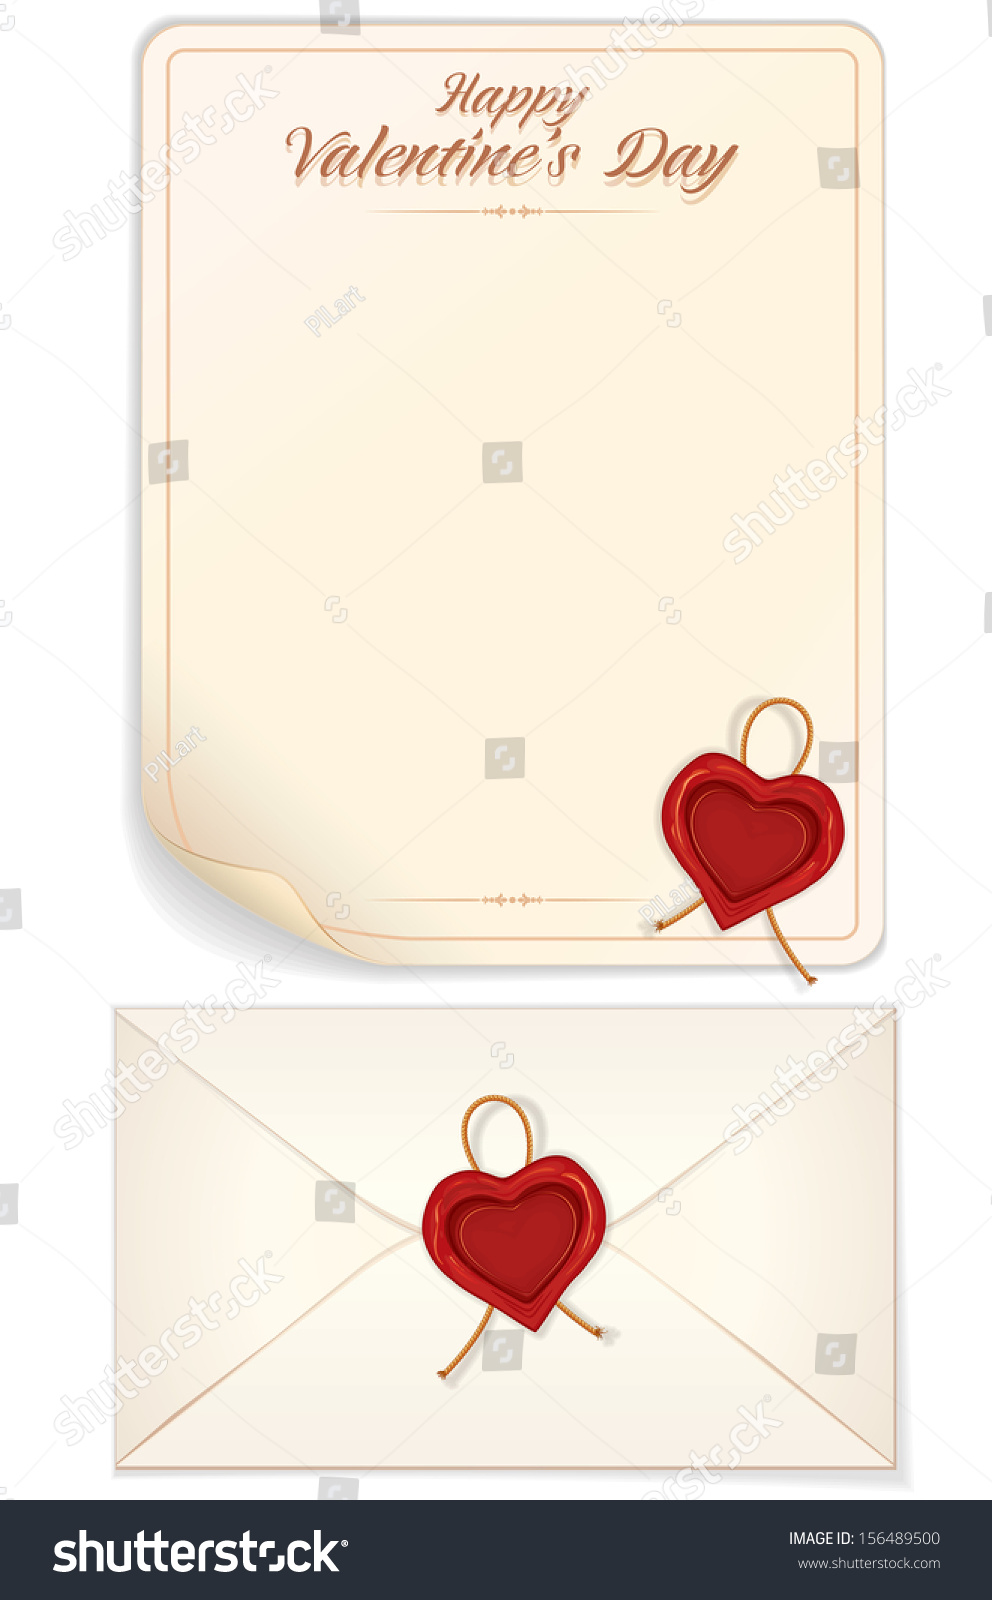 Valentines Day Love Letter Template Heart Stock Vector 156489500 ...